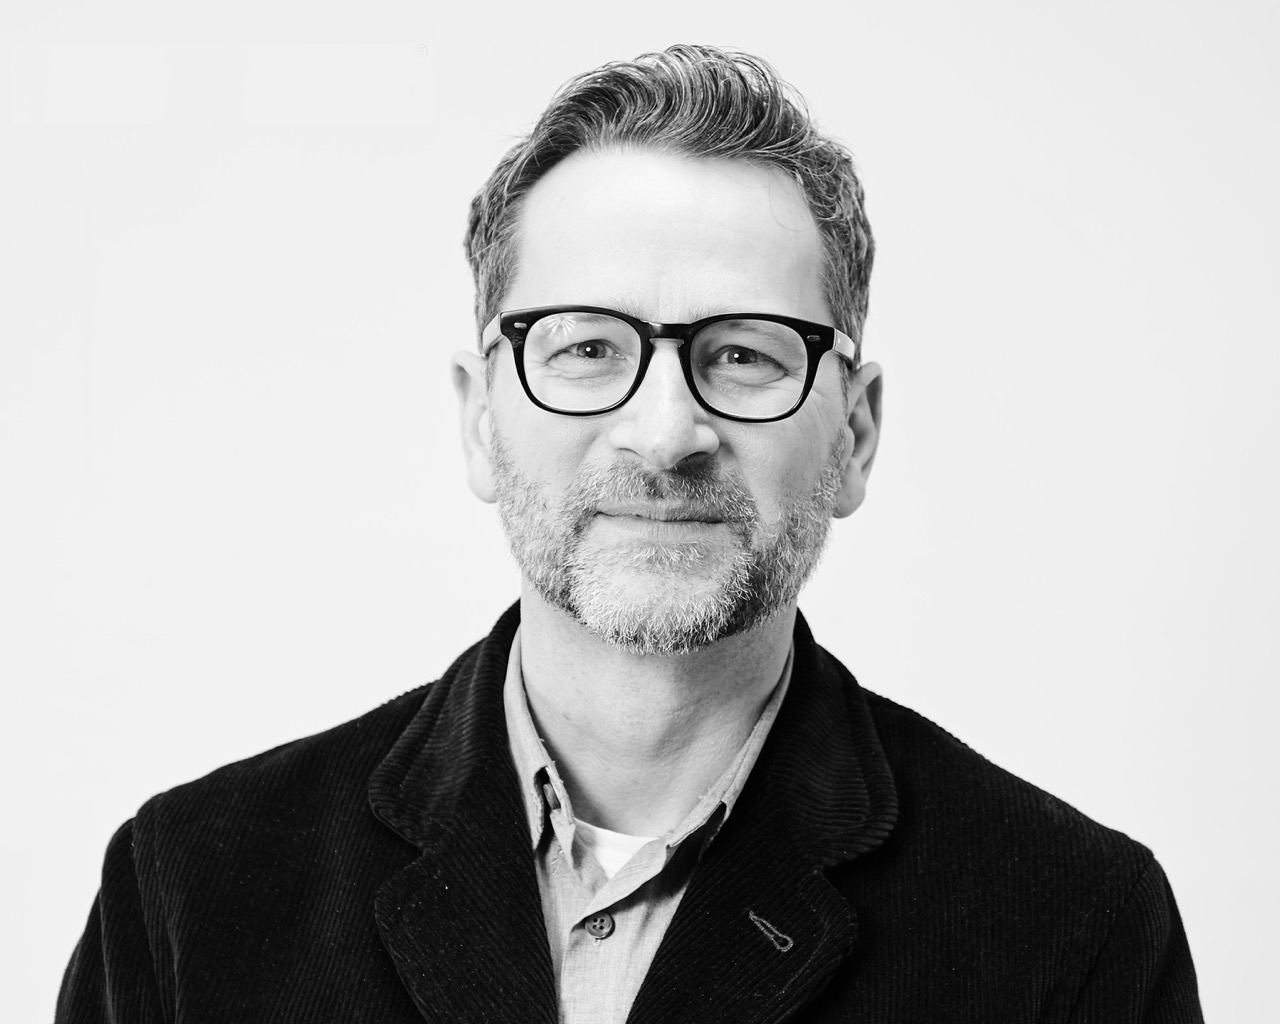 D&AD appoints Patrick Burgoyne as CEO; Tim Lindsay will remain at D&AD as chairman